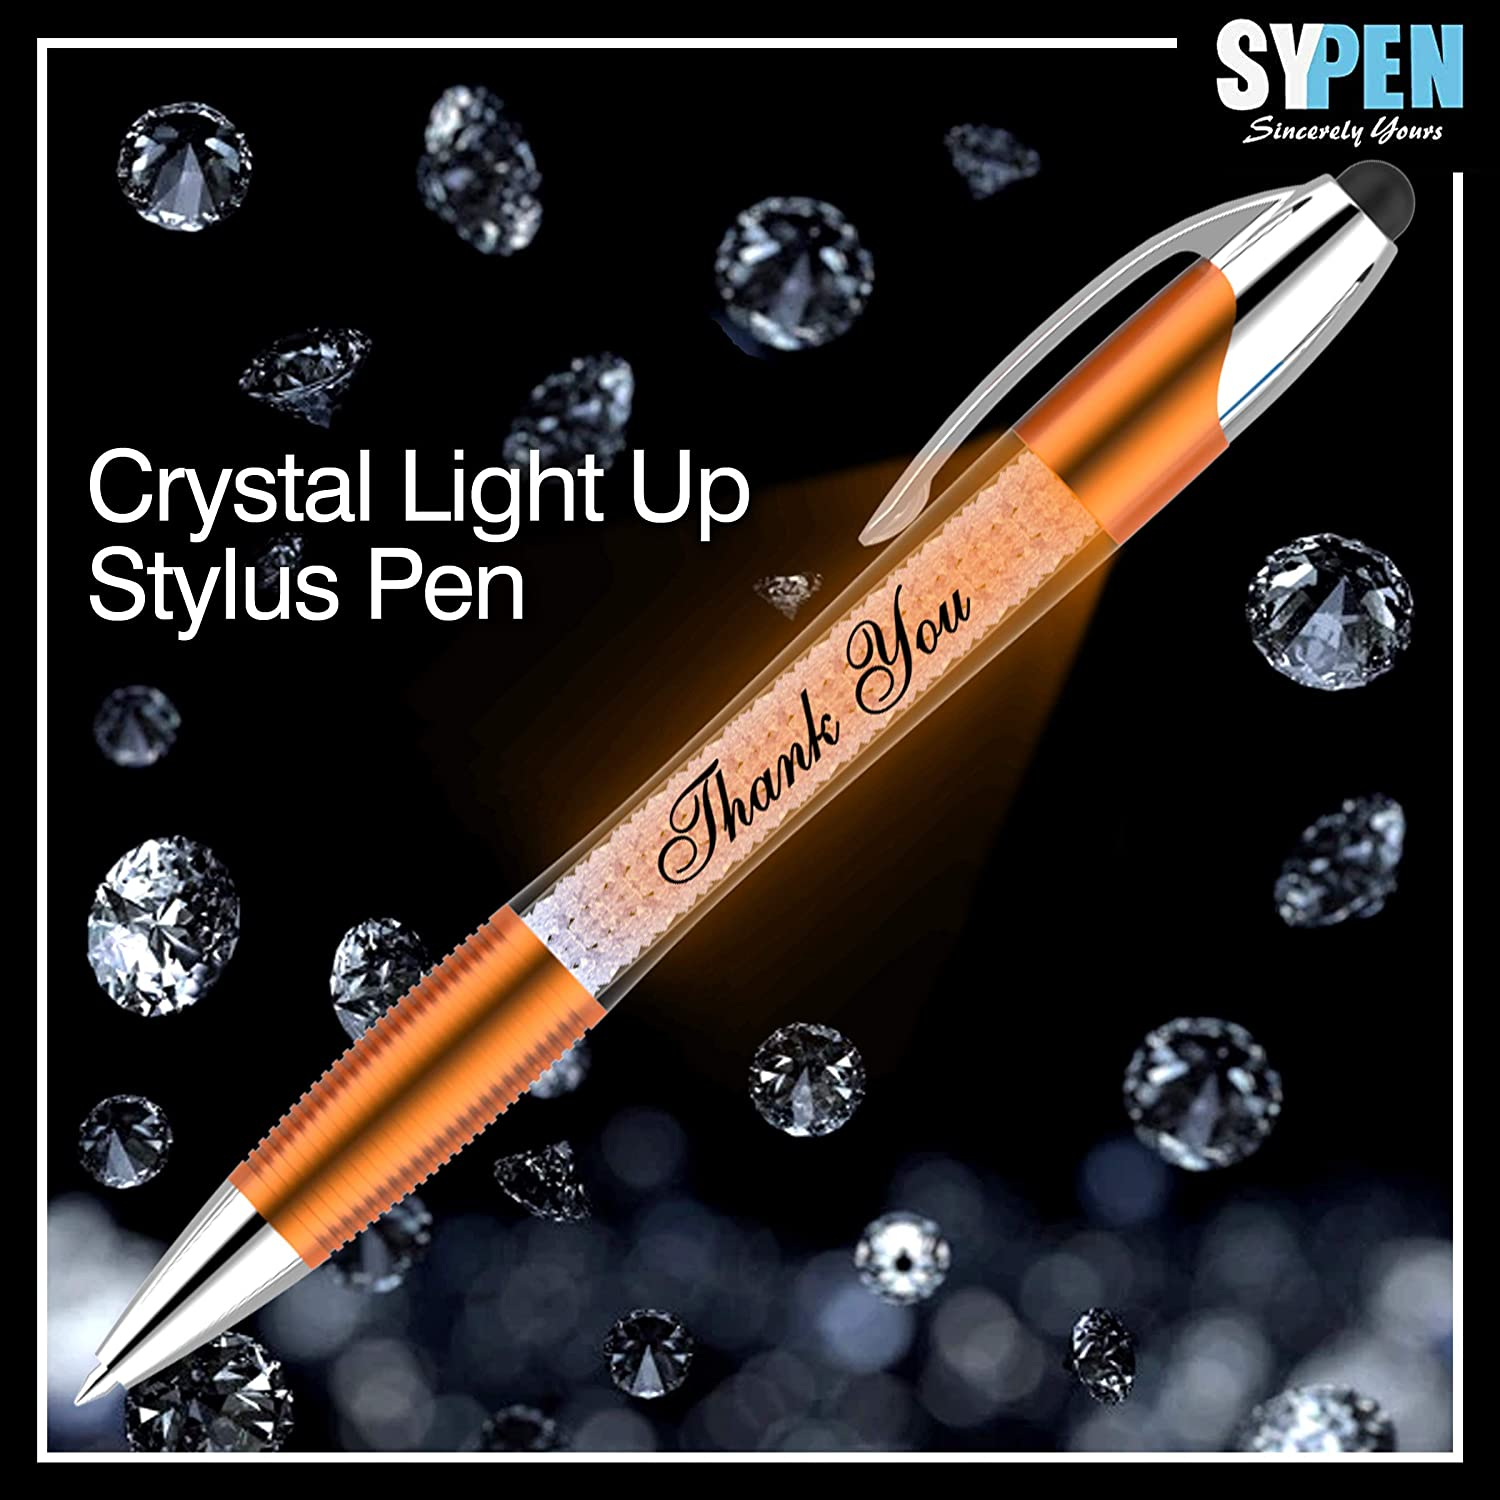 Multicolor 6 Pack Ballpoint Pen Barrel Filled with Crystals-Compatible with Most Phones and Touch Screen Devices Thank You Greeting Gift Stylus Pens-Pen Lights up a Thank You Message 3 in 1 Stylus